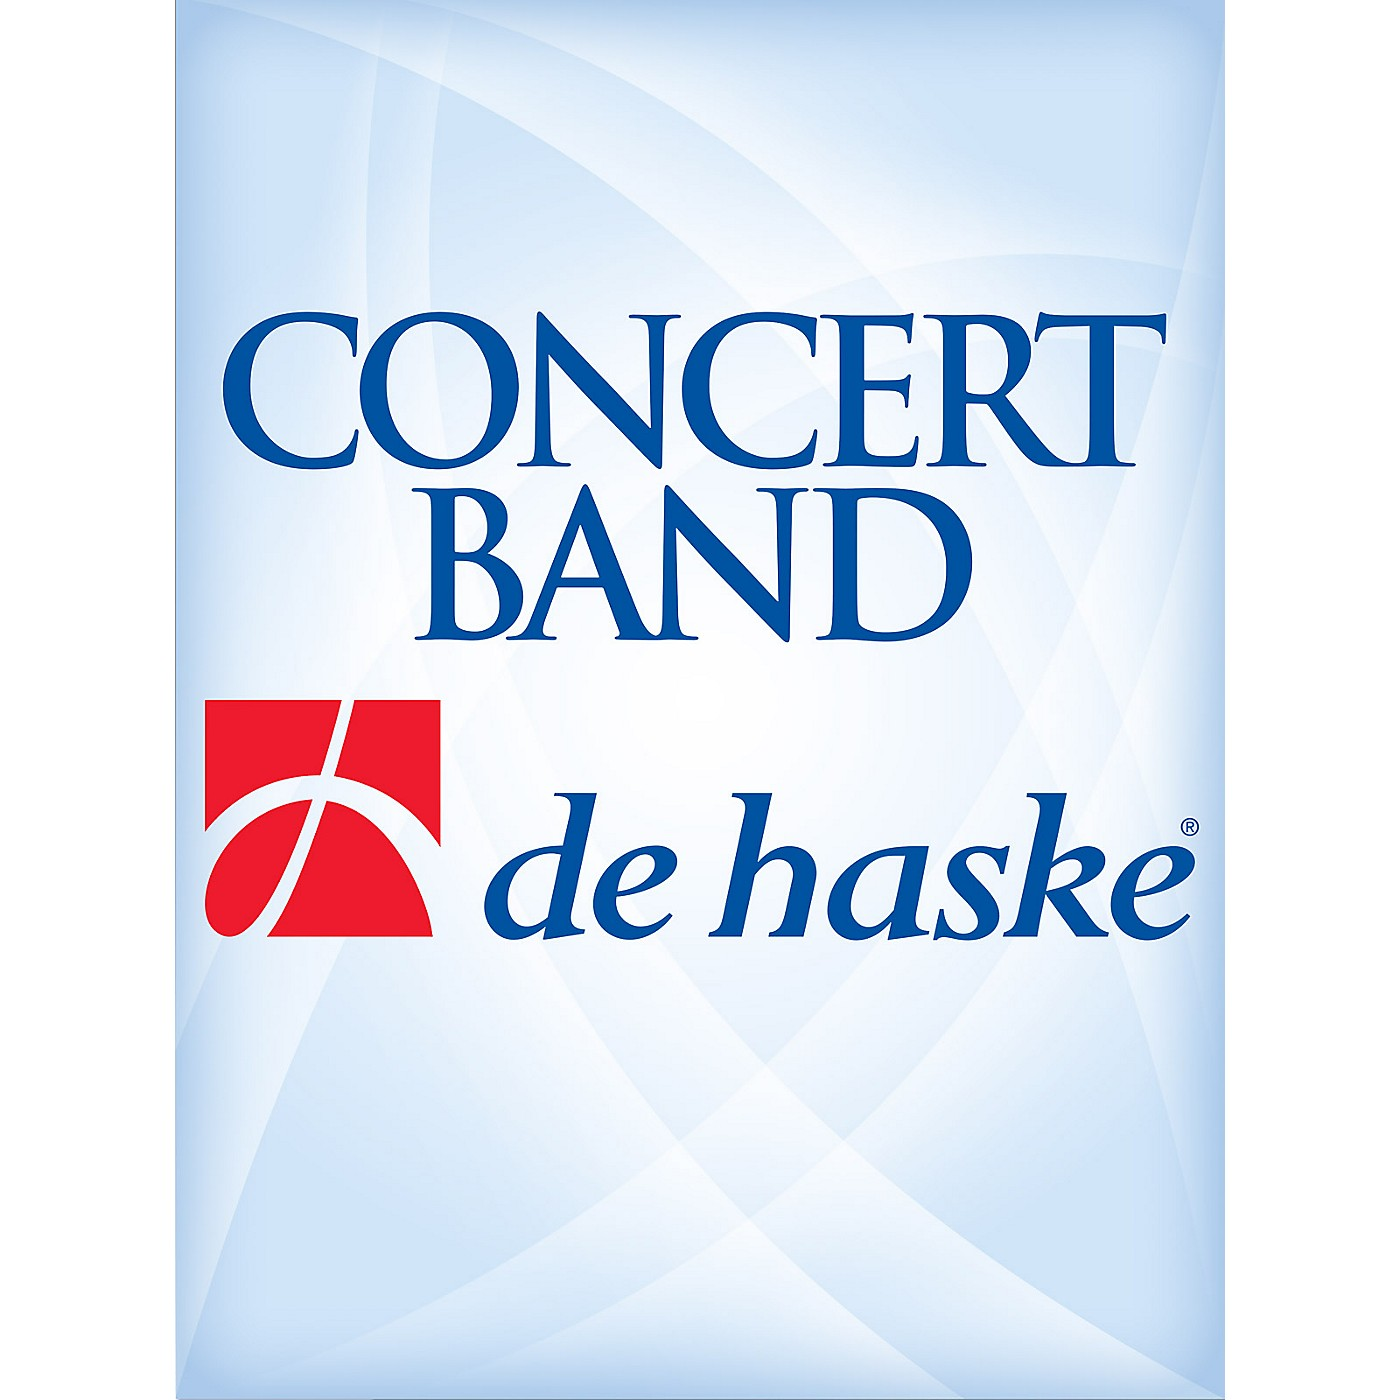 De Haske Music Ballad (Score and Parts) Concert Band Composed by Jan Hadermann thumbnail